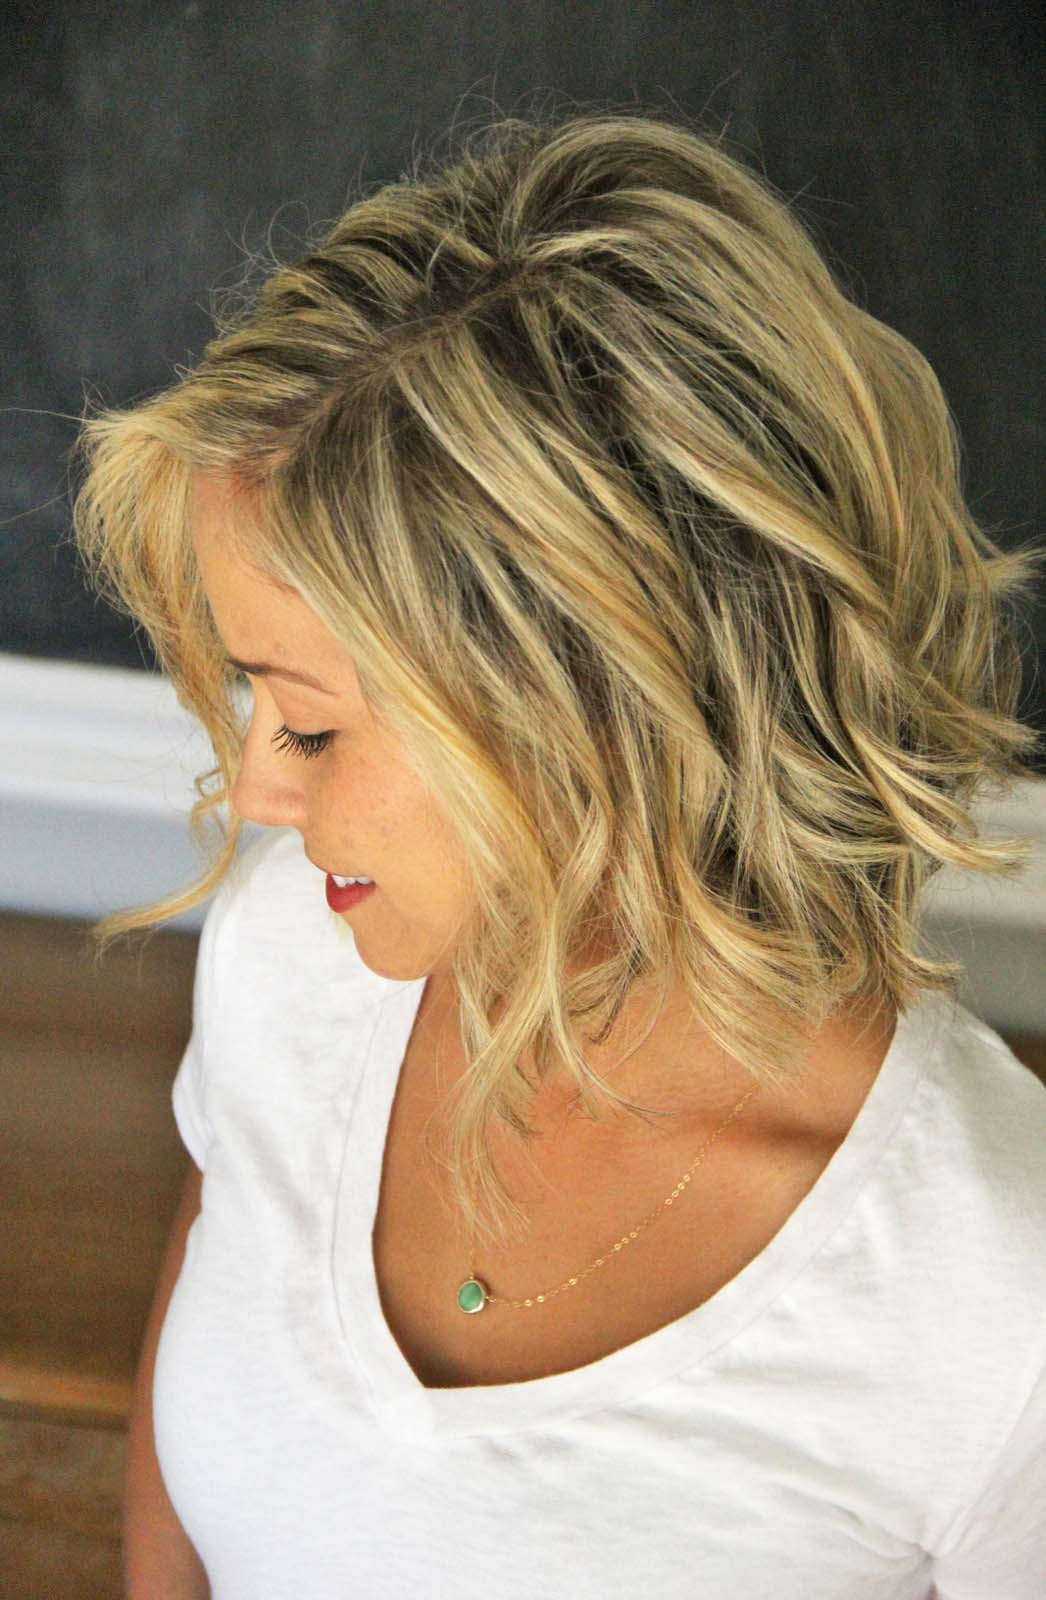 How To Beach Waves For Short Hair Style Little Miss Momma